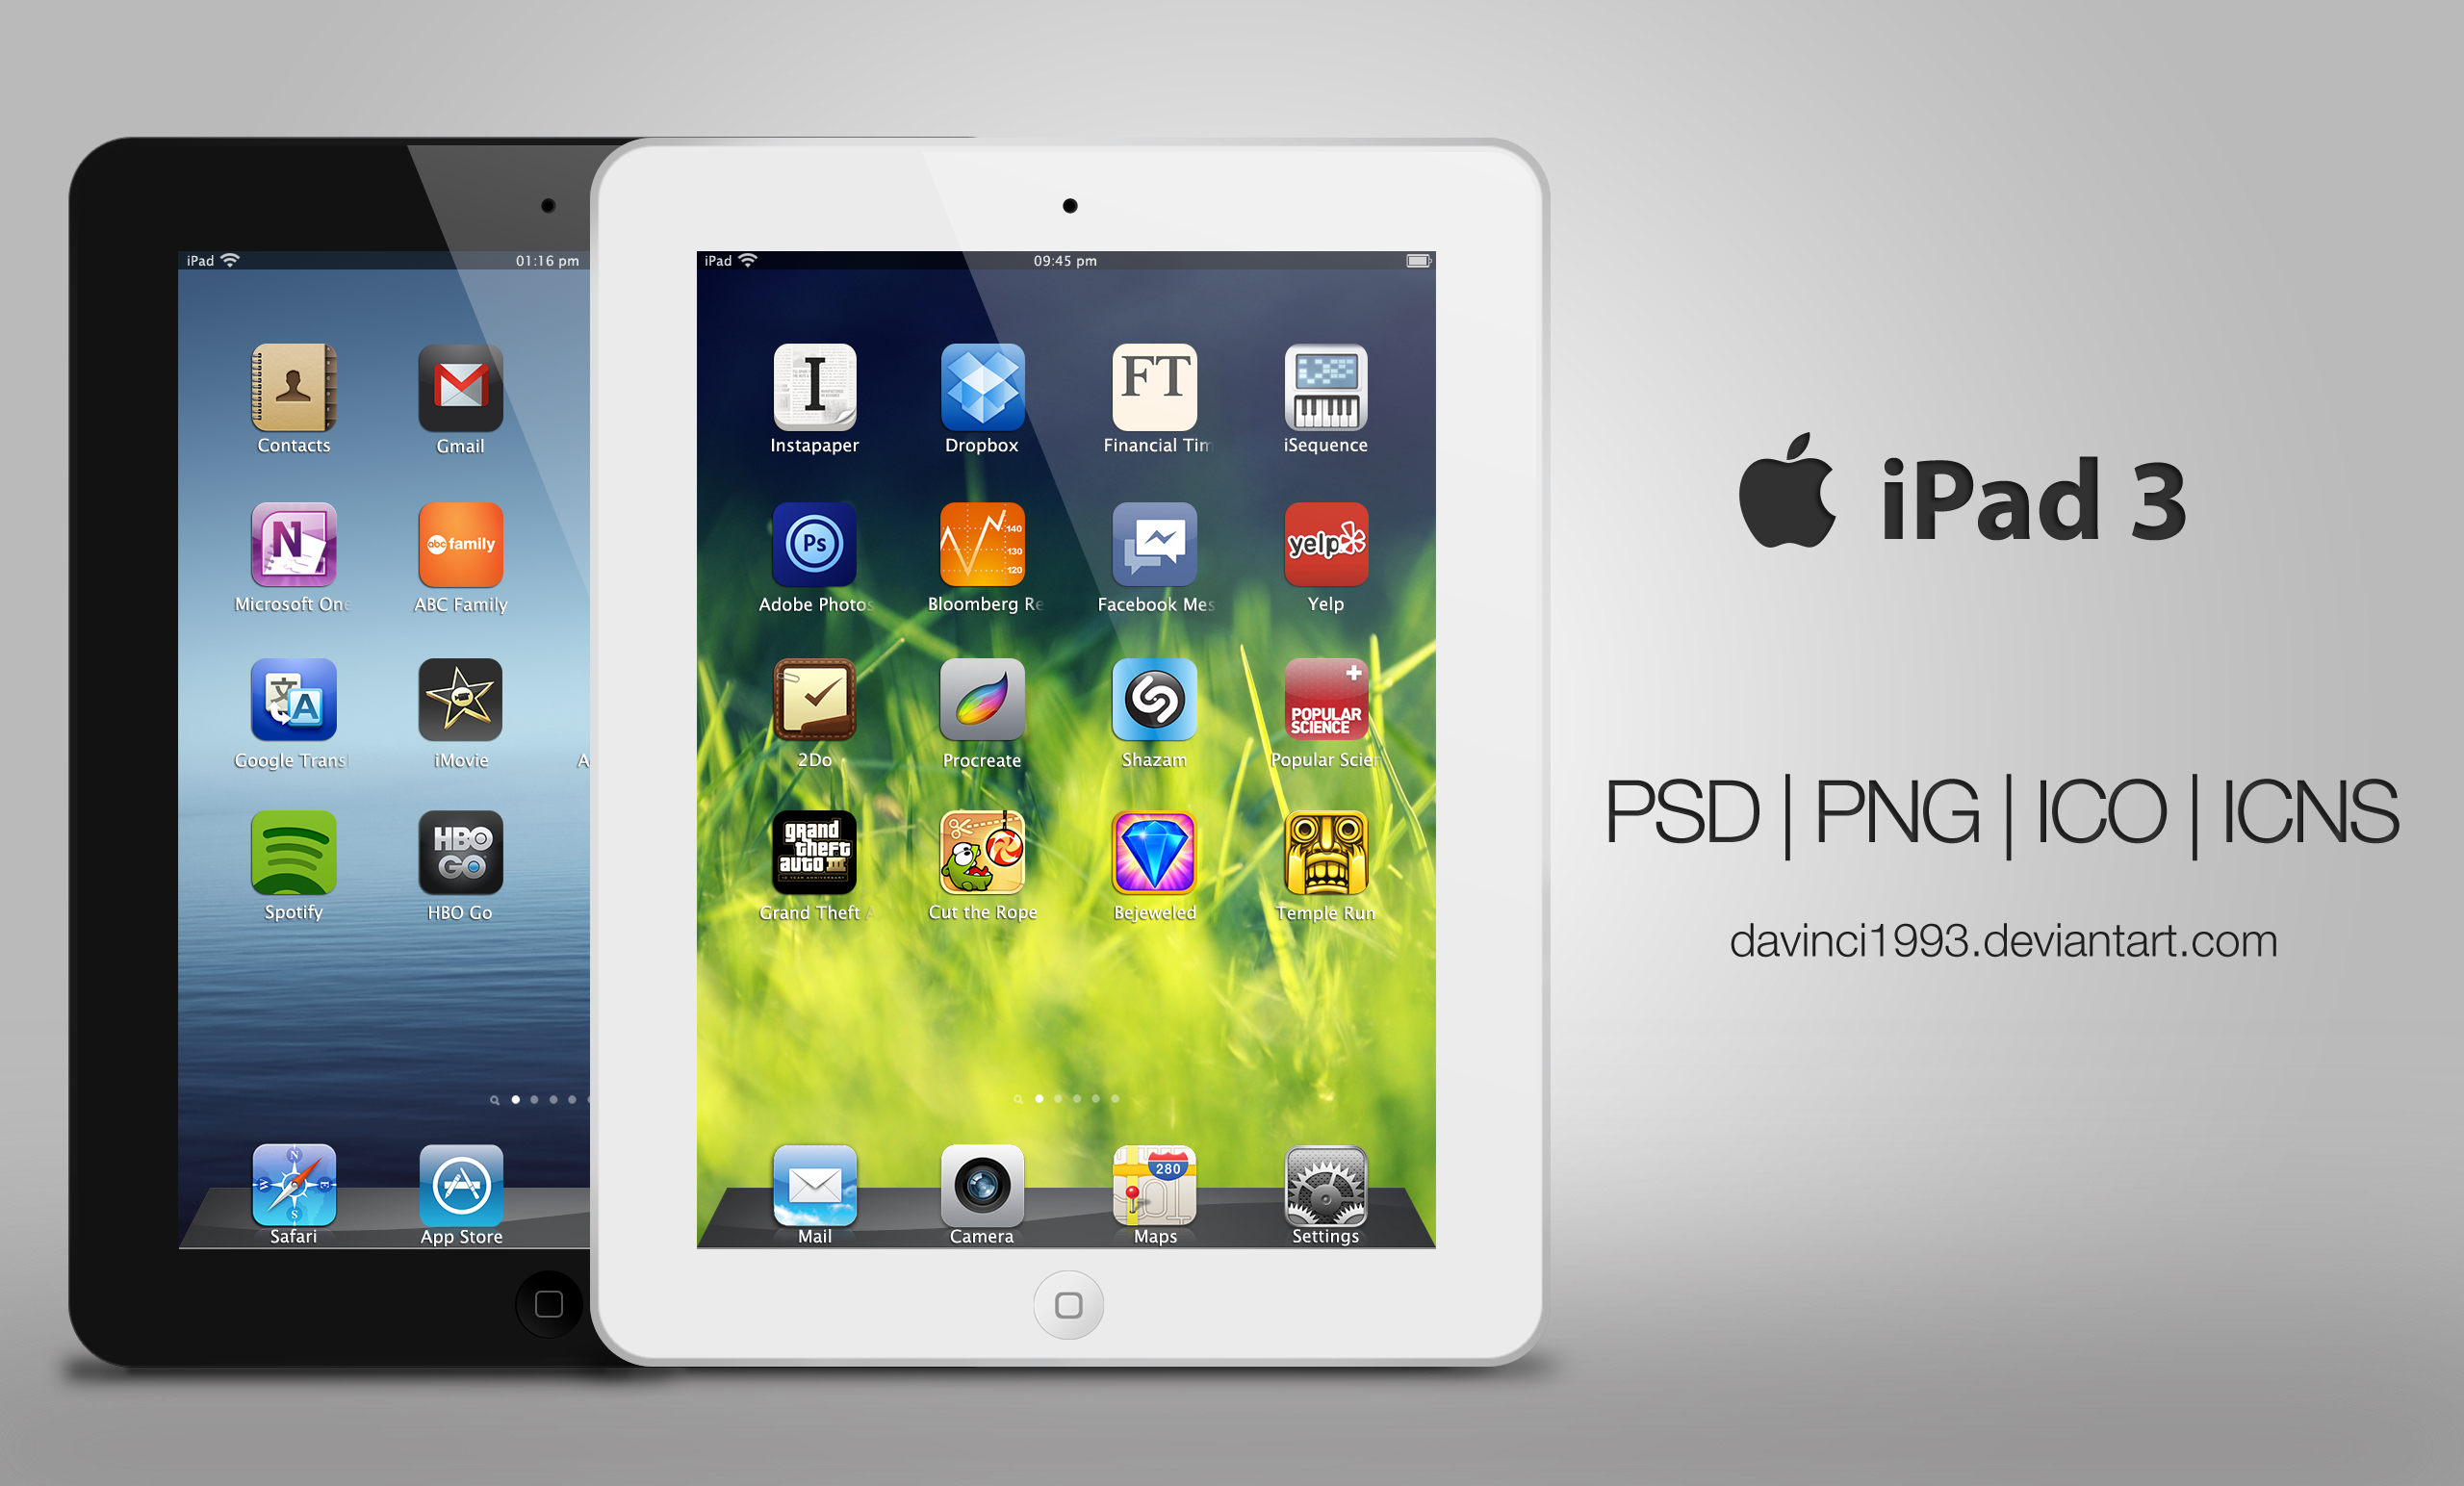 Apple iPad 3: PSD | PNG | ICO | ICNS